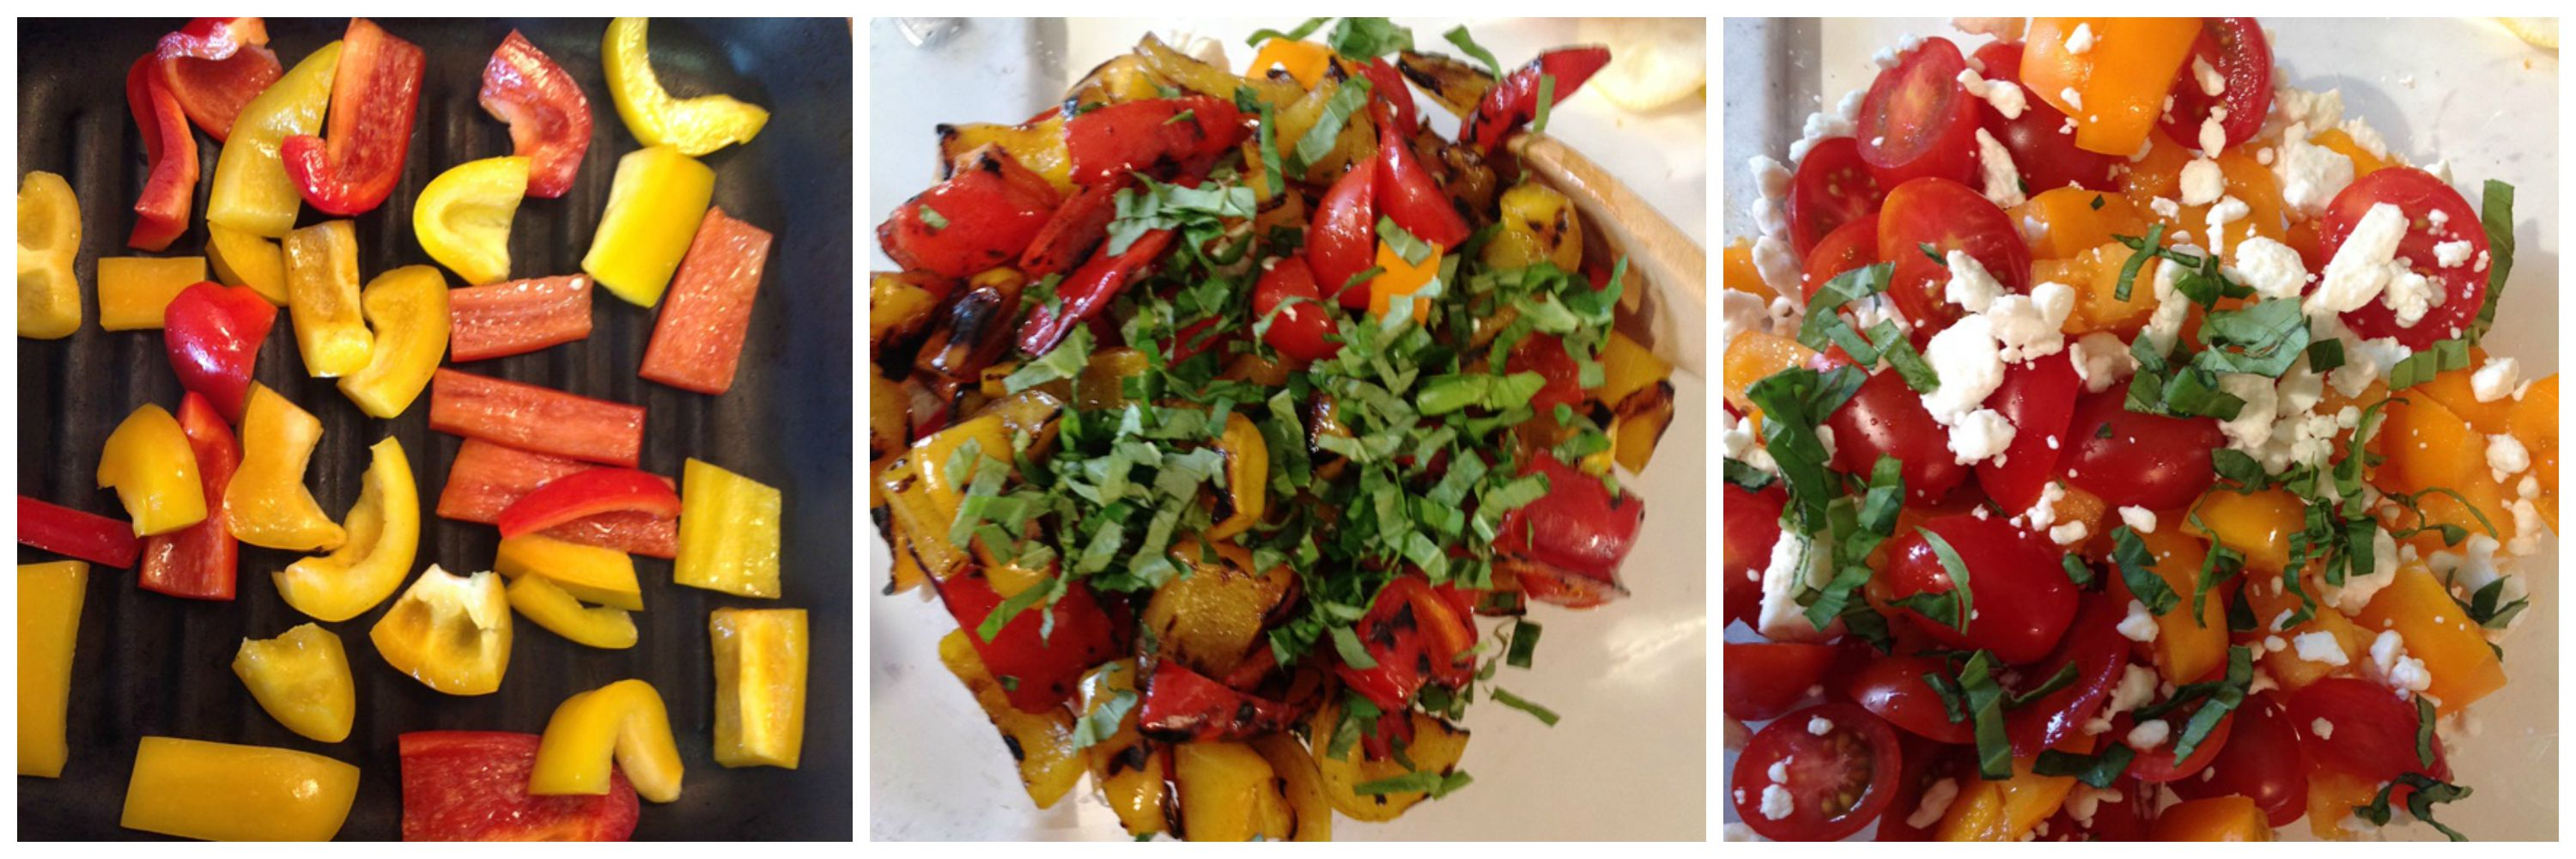 Tomato & Grilled Bell Pepper Salad Steps